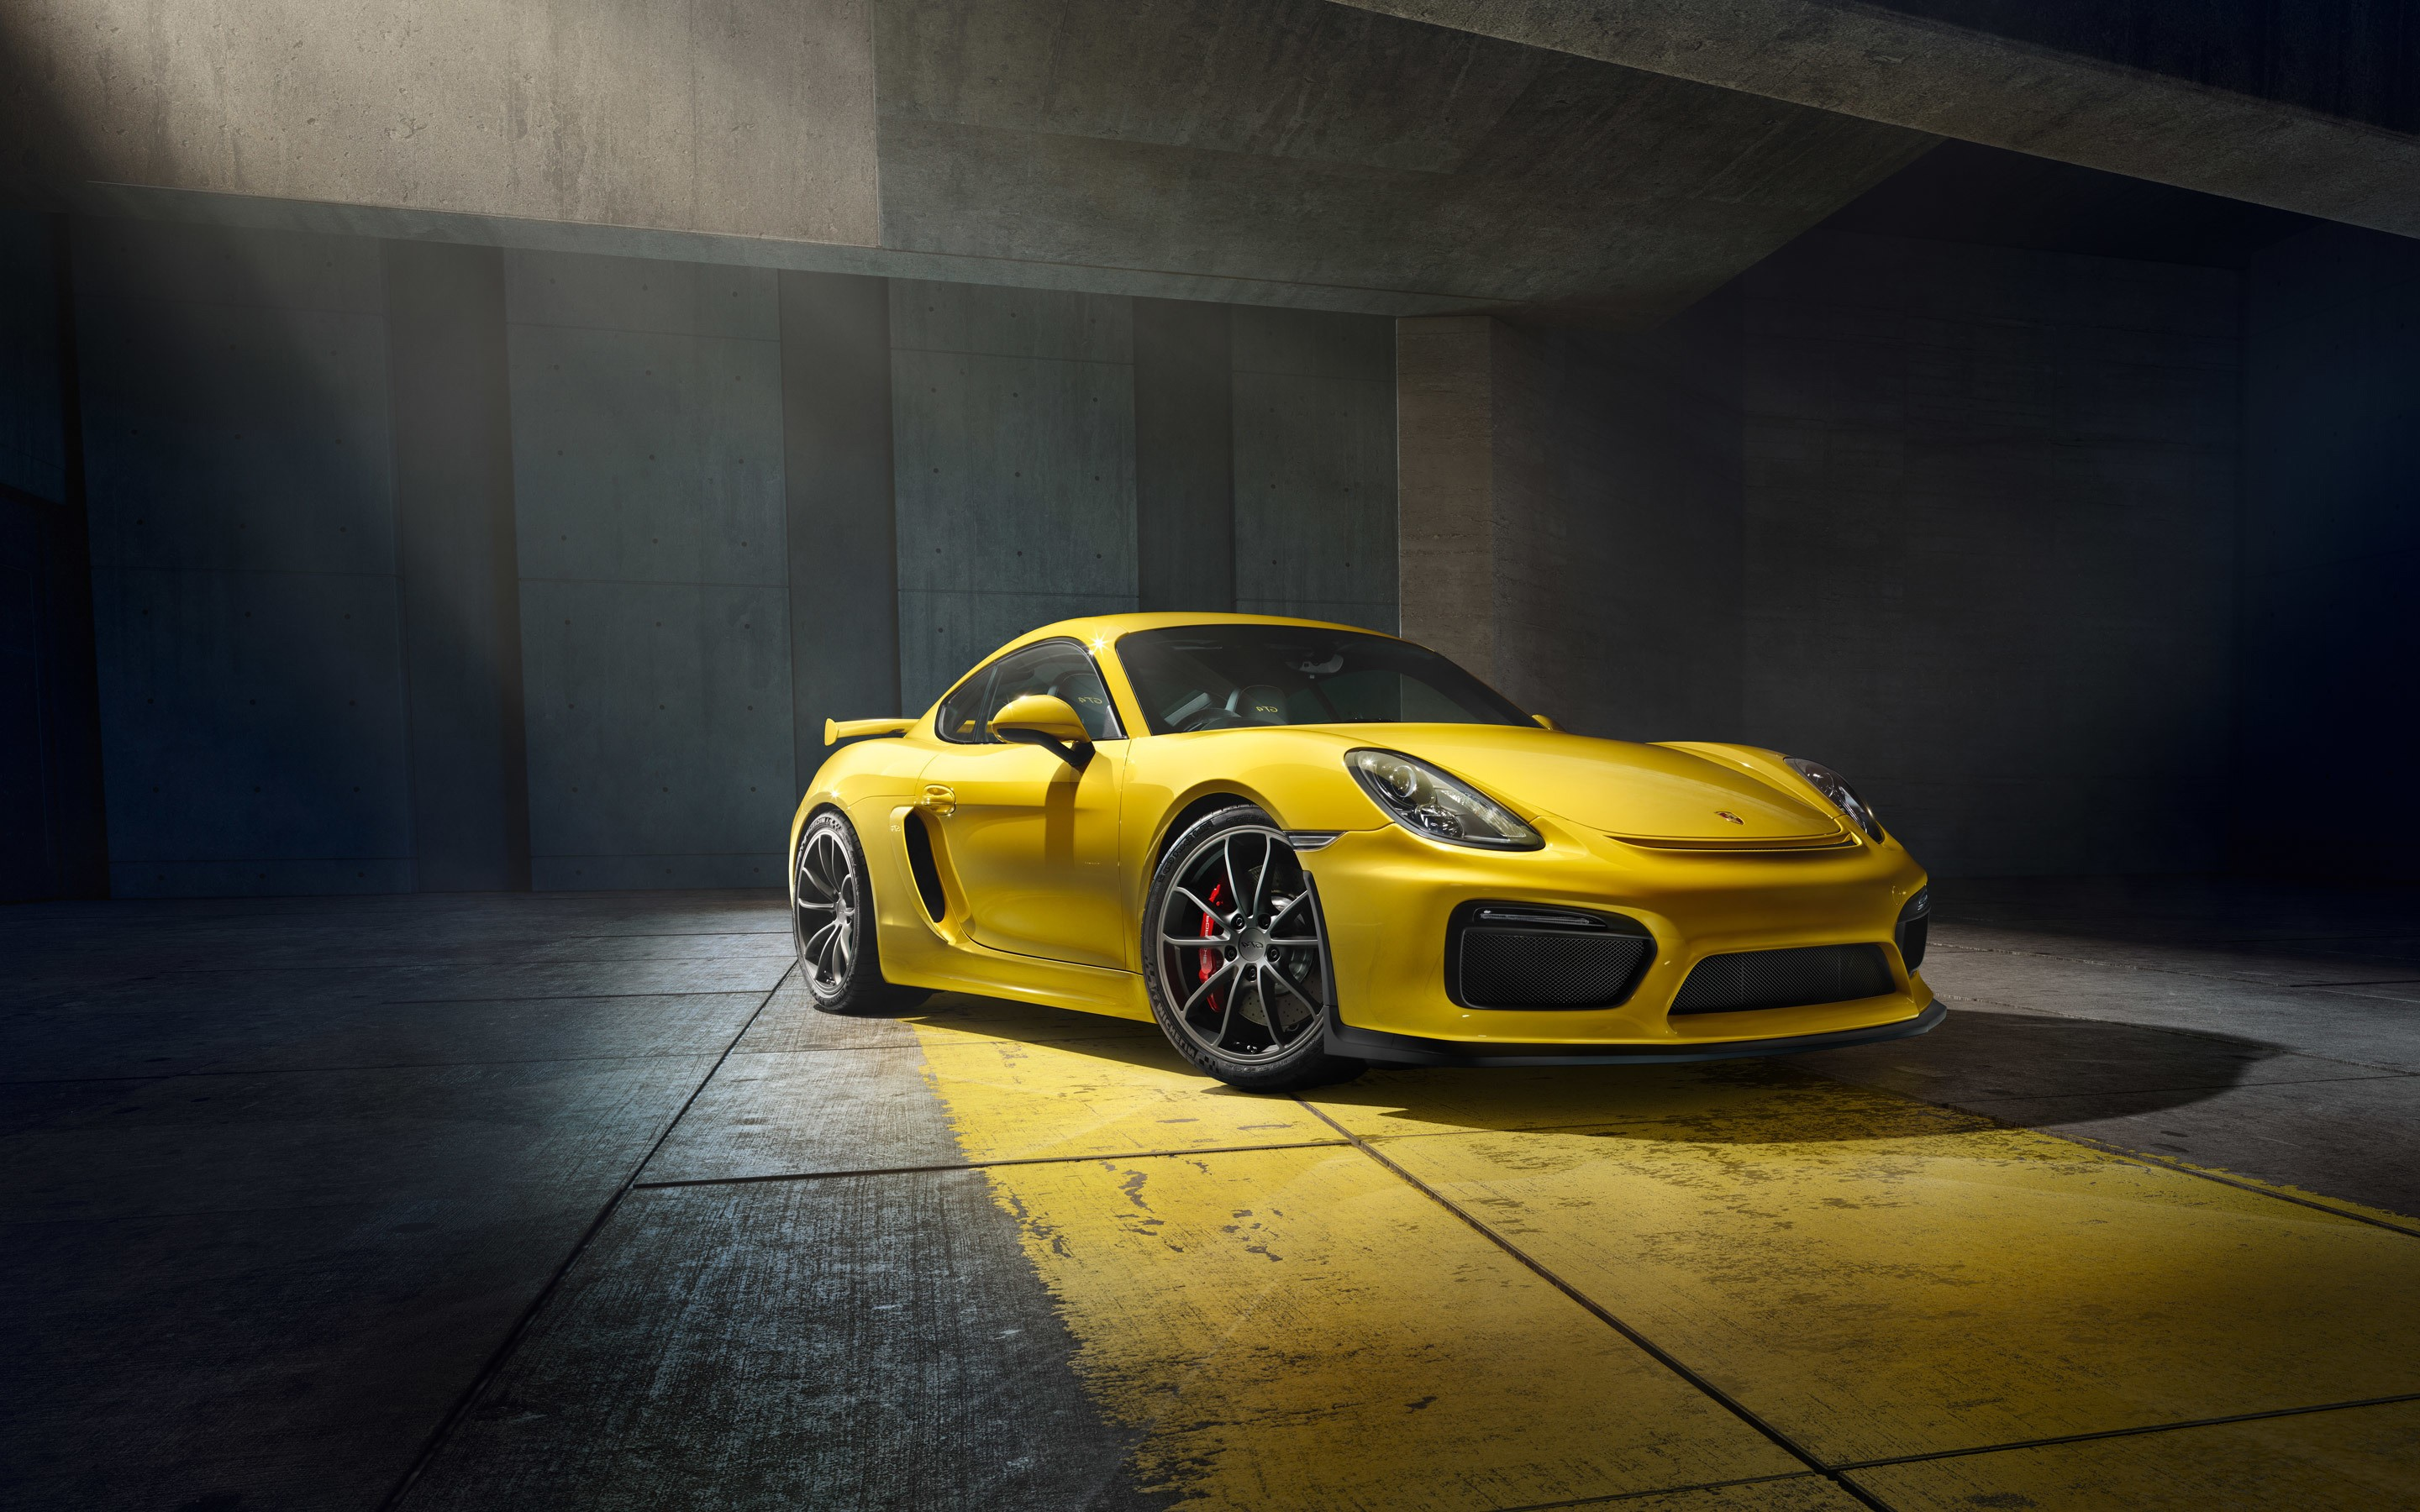 2880x1800 - Porsche Cayman Wallpapers 3